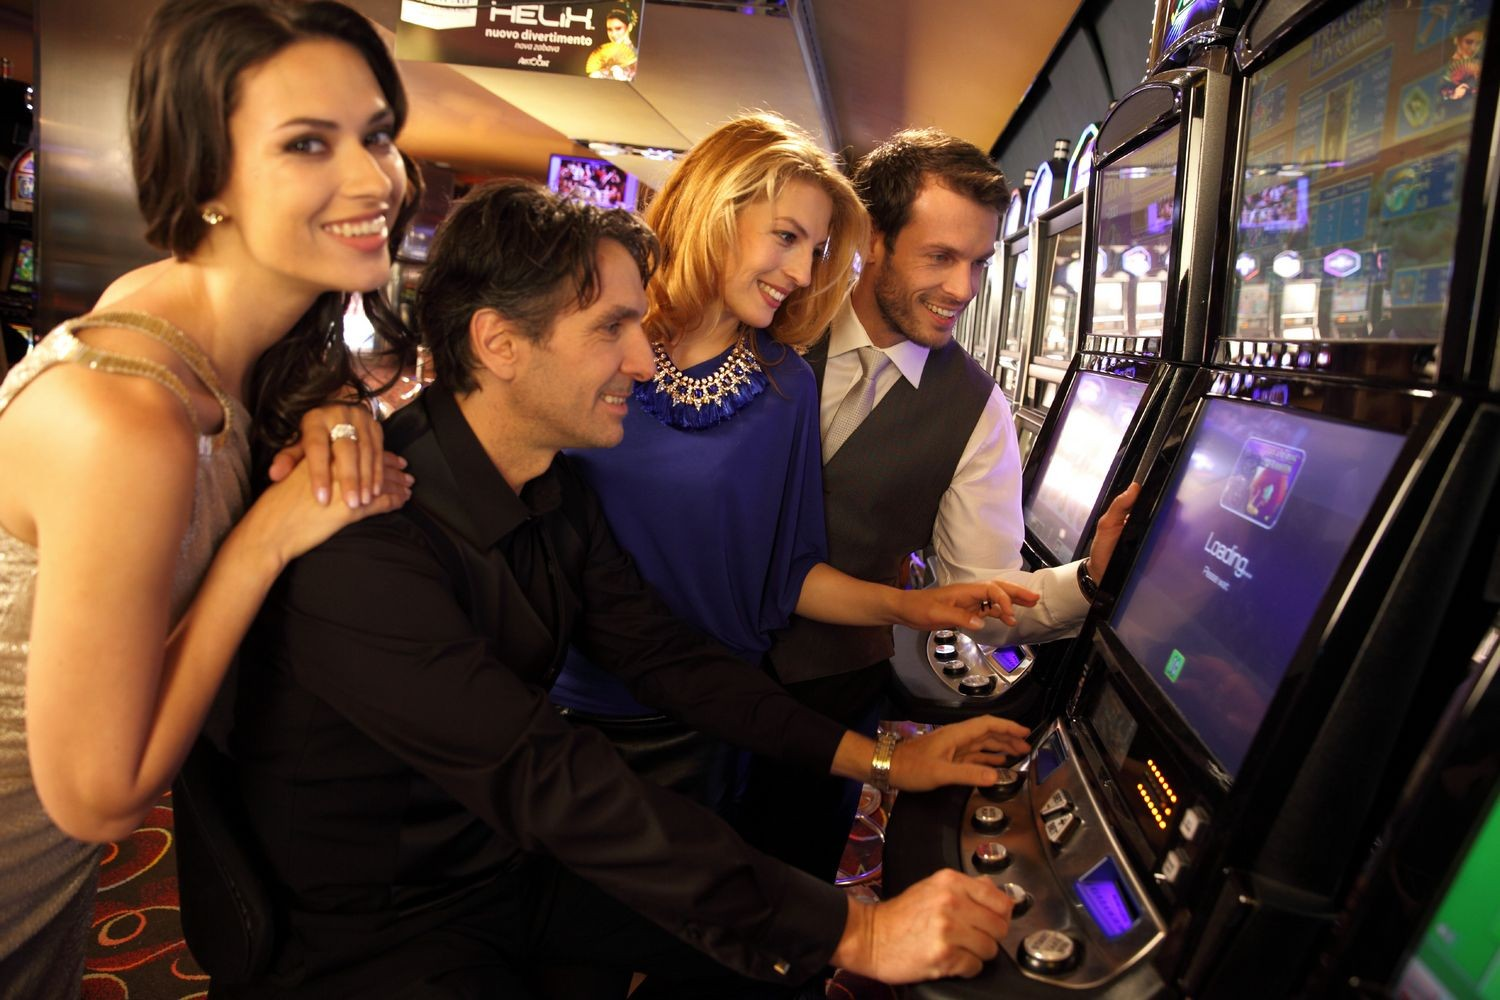 Are you ready to play gambling games in your free time?